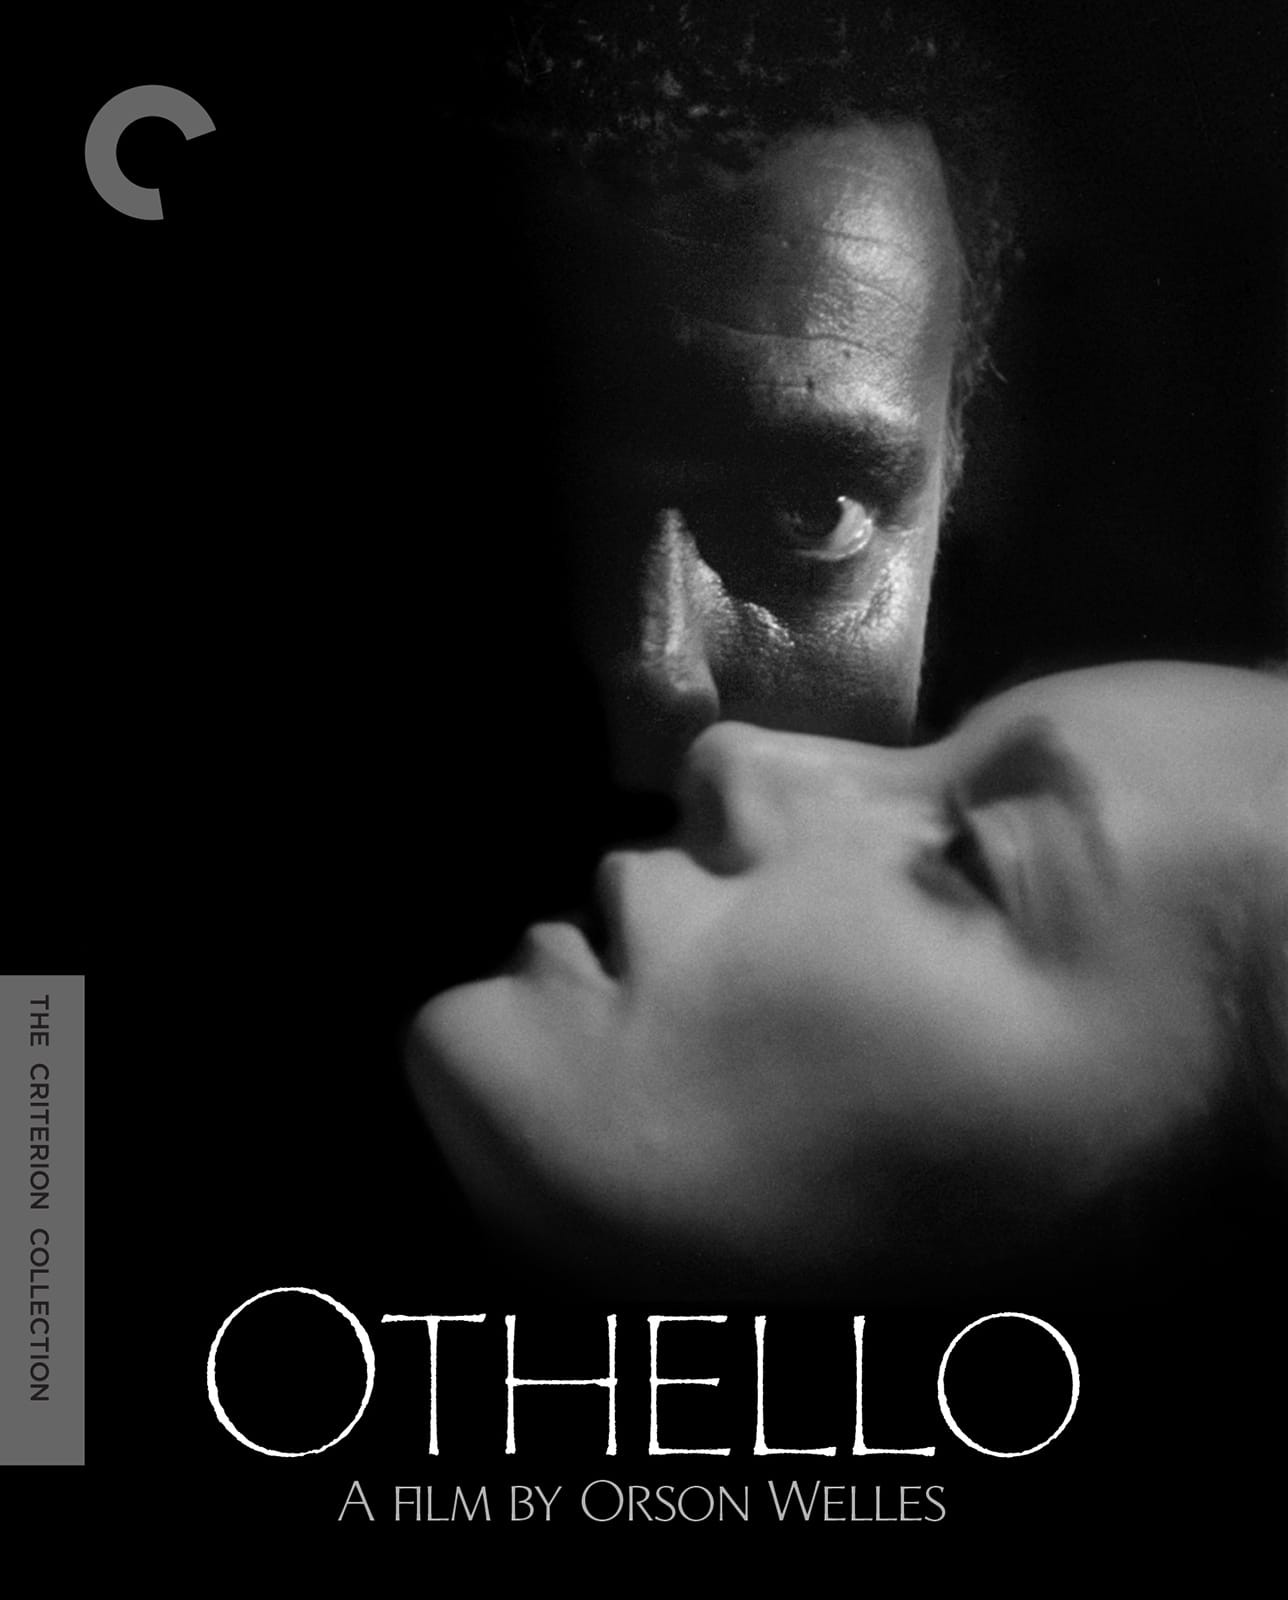 Blu-ray Review: Orson Welles's Othello on the Criterion